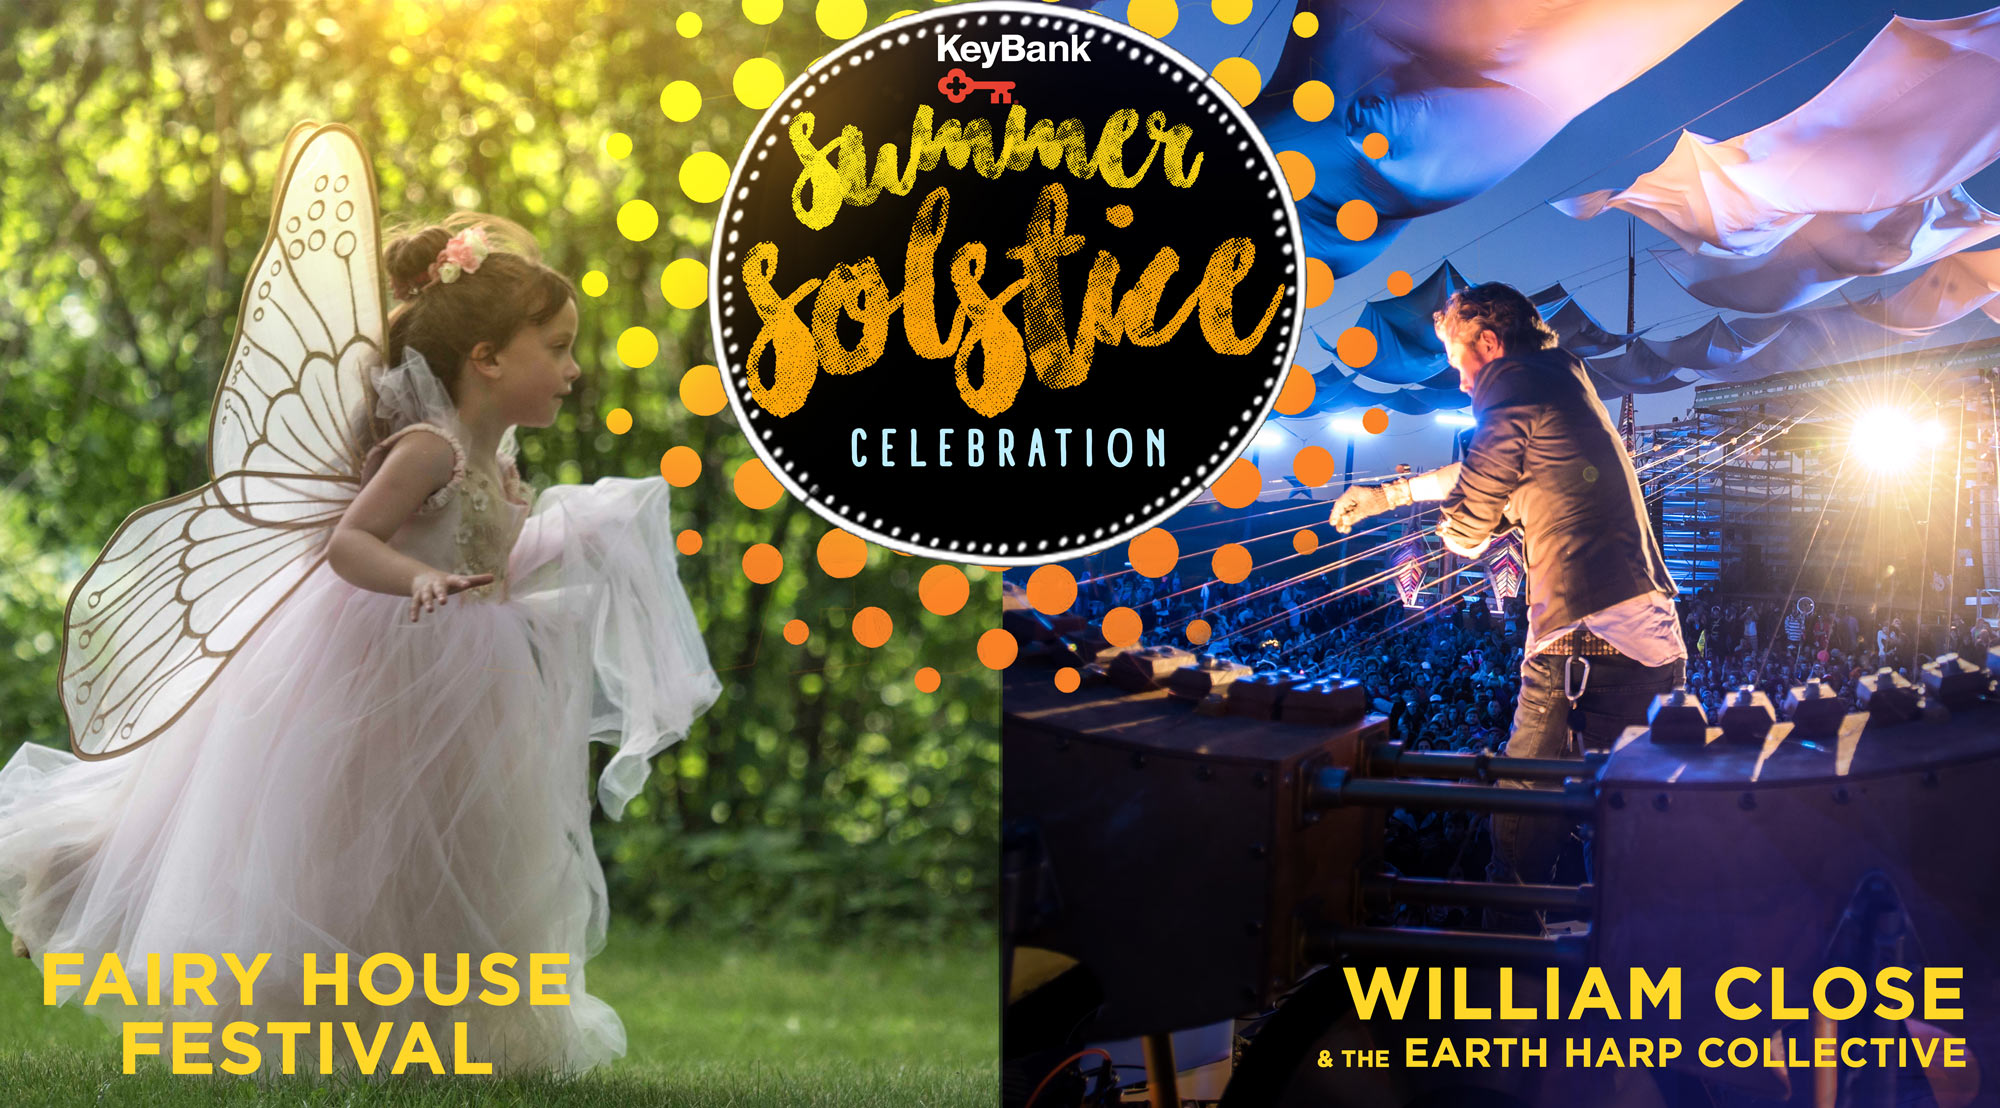 KeyBank Summer Solstice Celebration